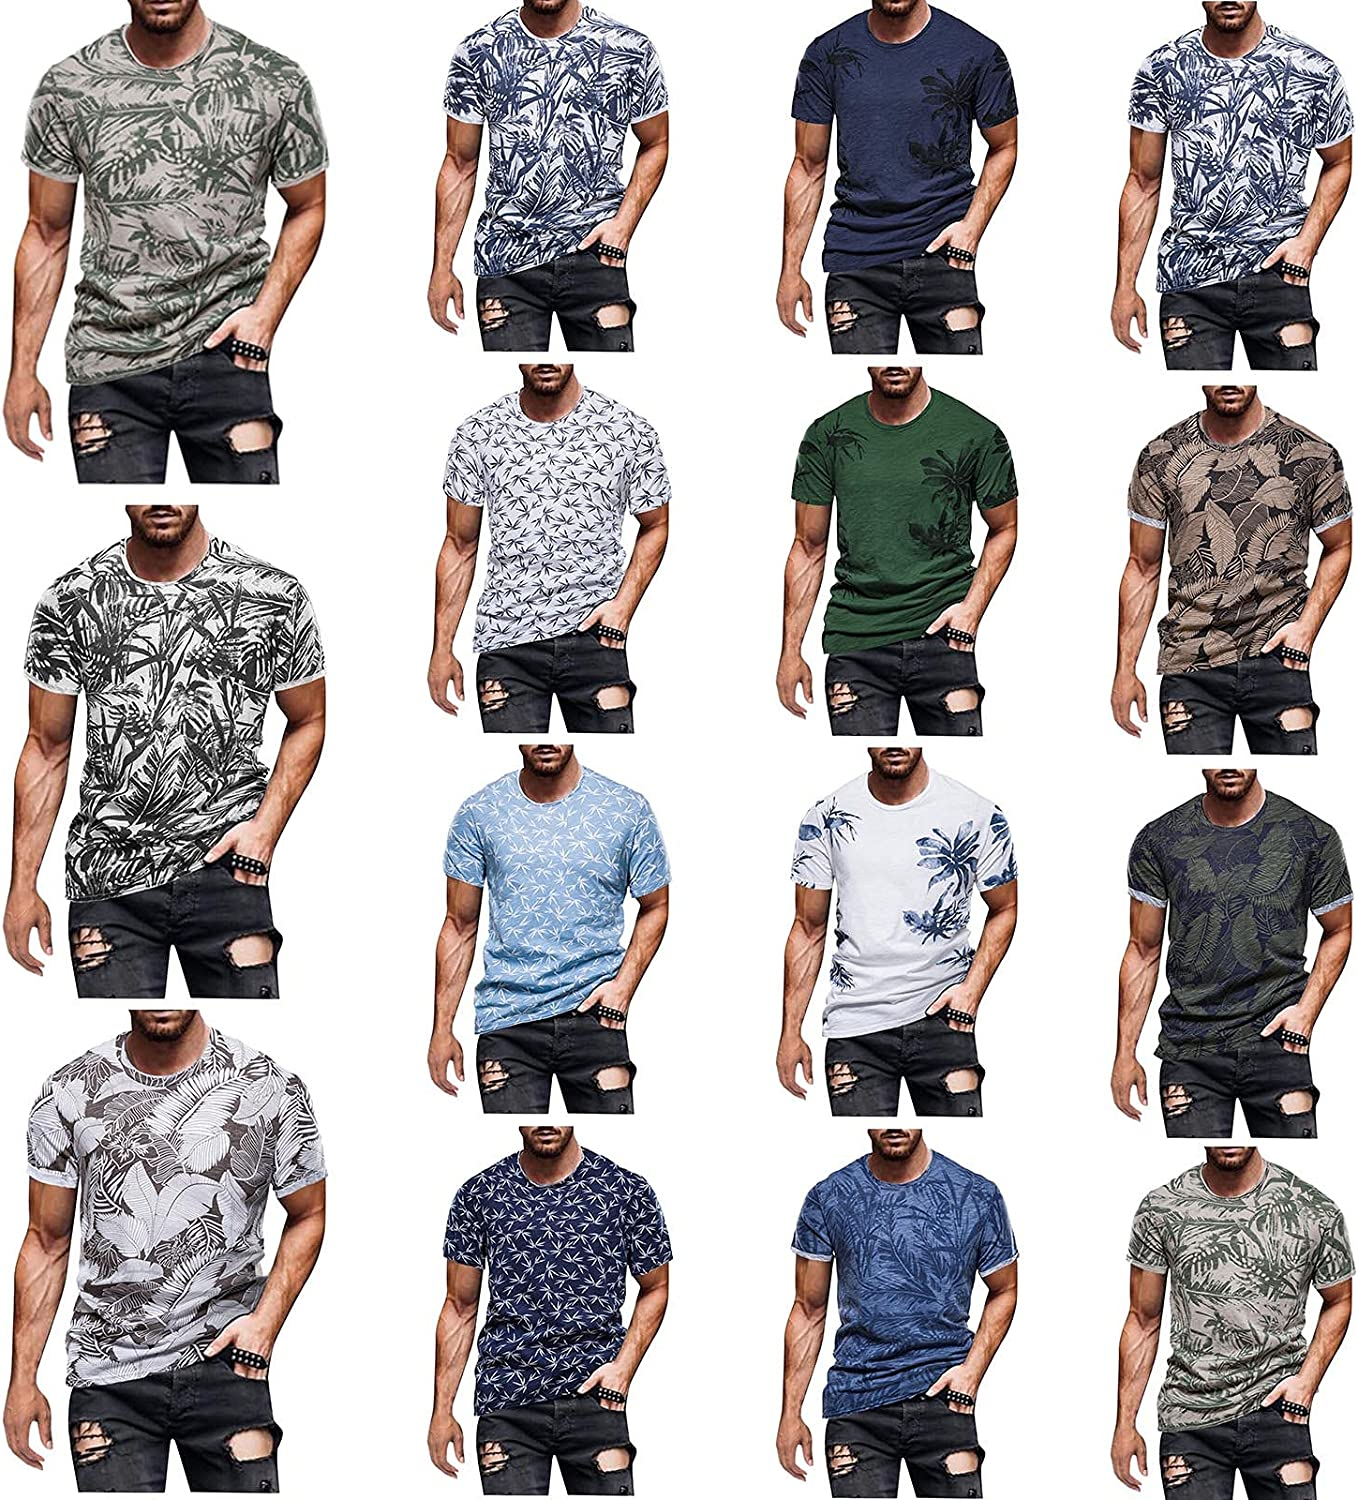 JSPOYOU Mens Muscle Gym T-Shirts Athletic Workout B Sleeve List Spring new work price Short